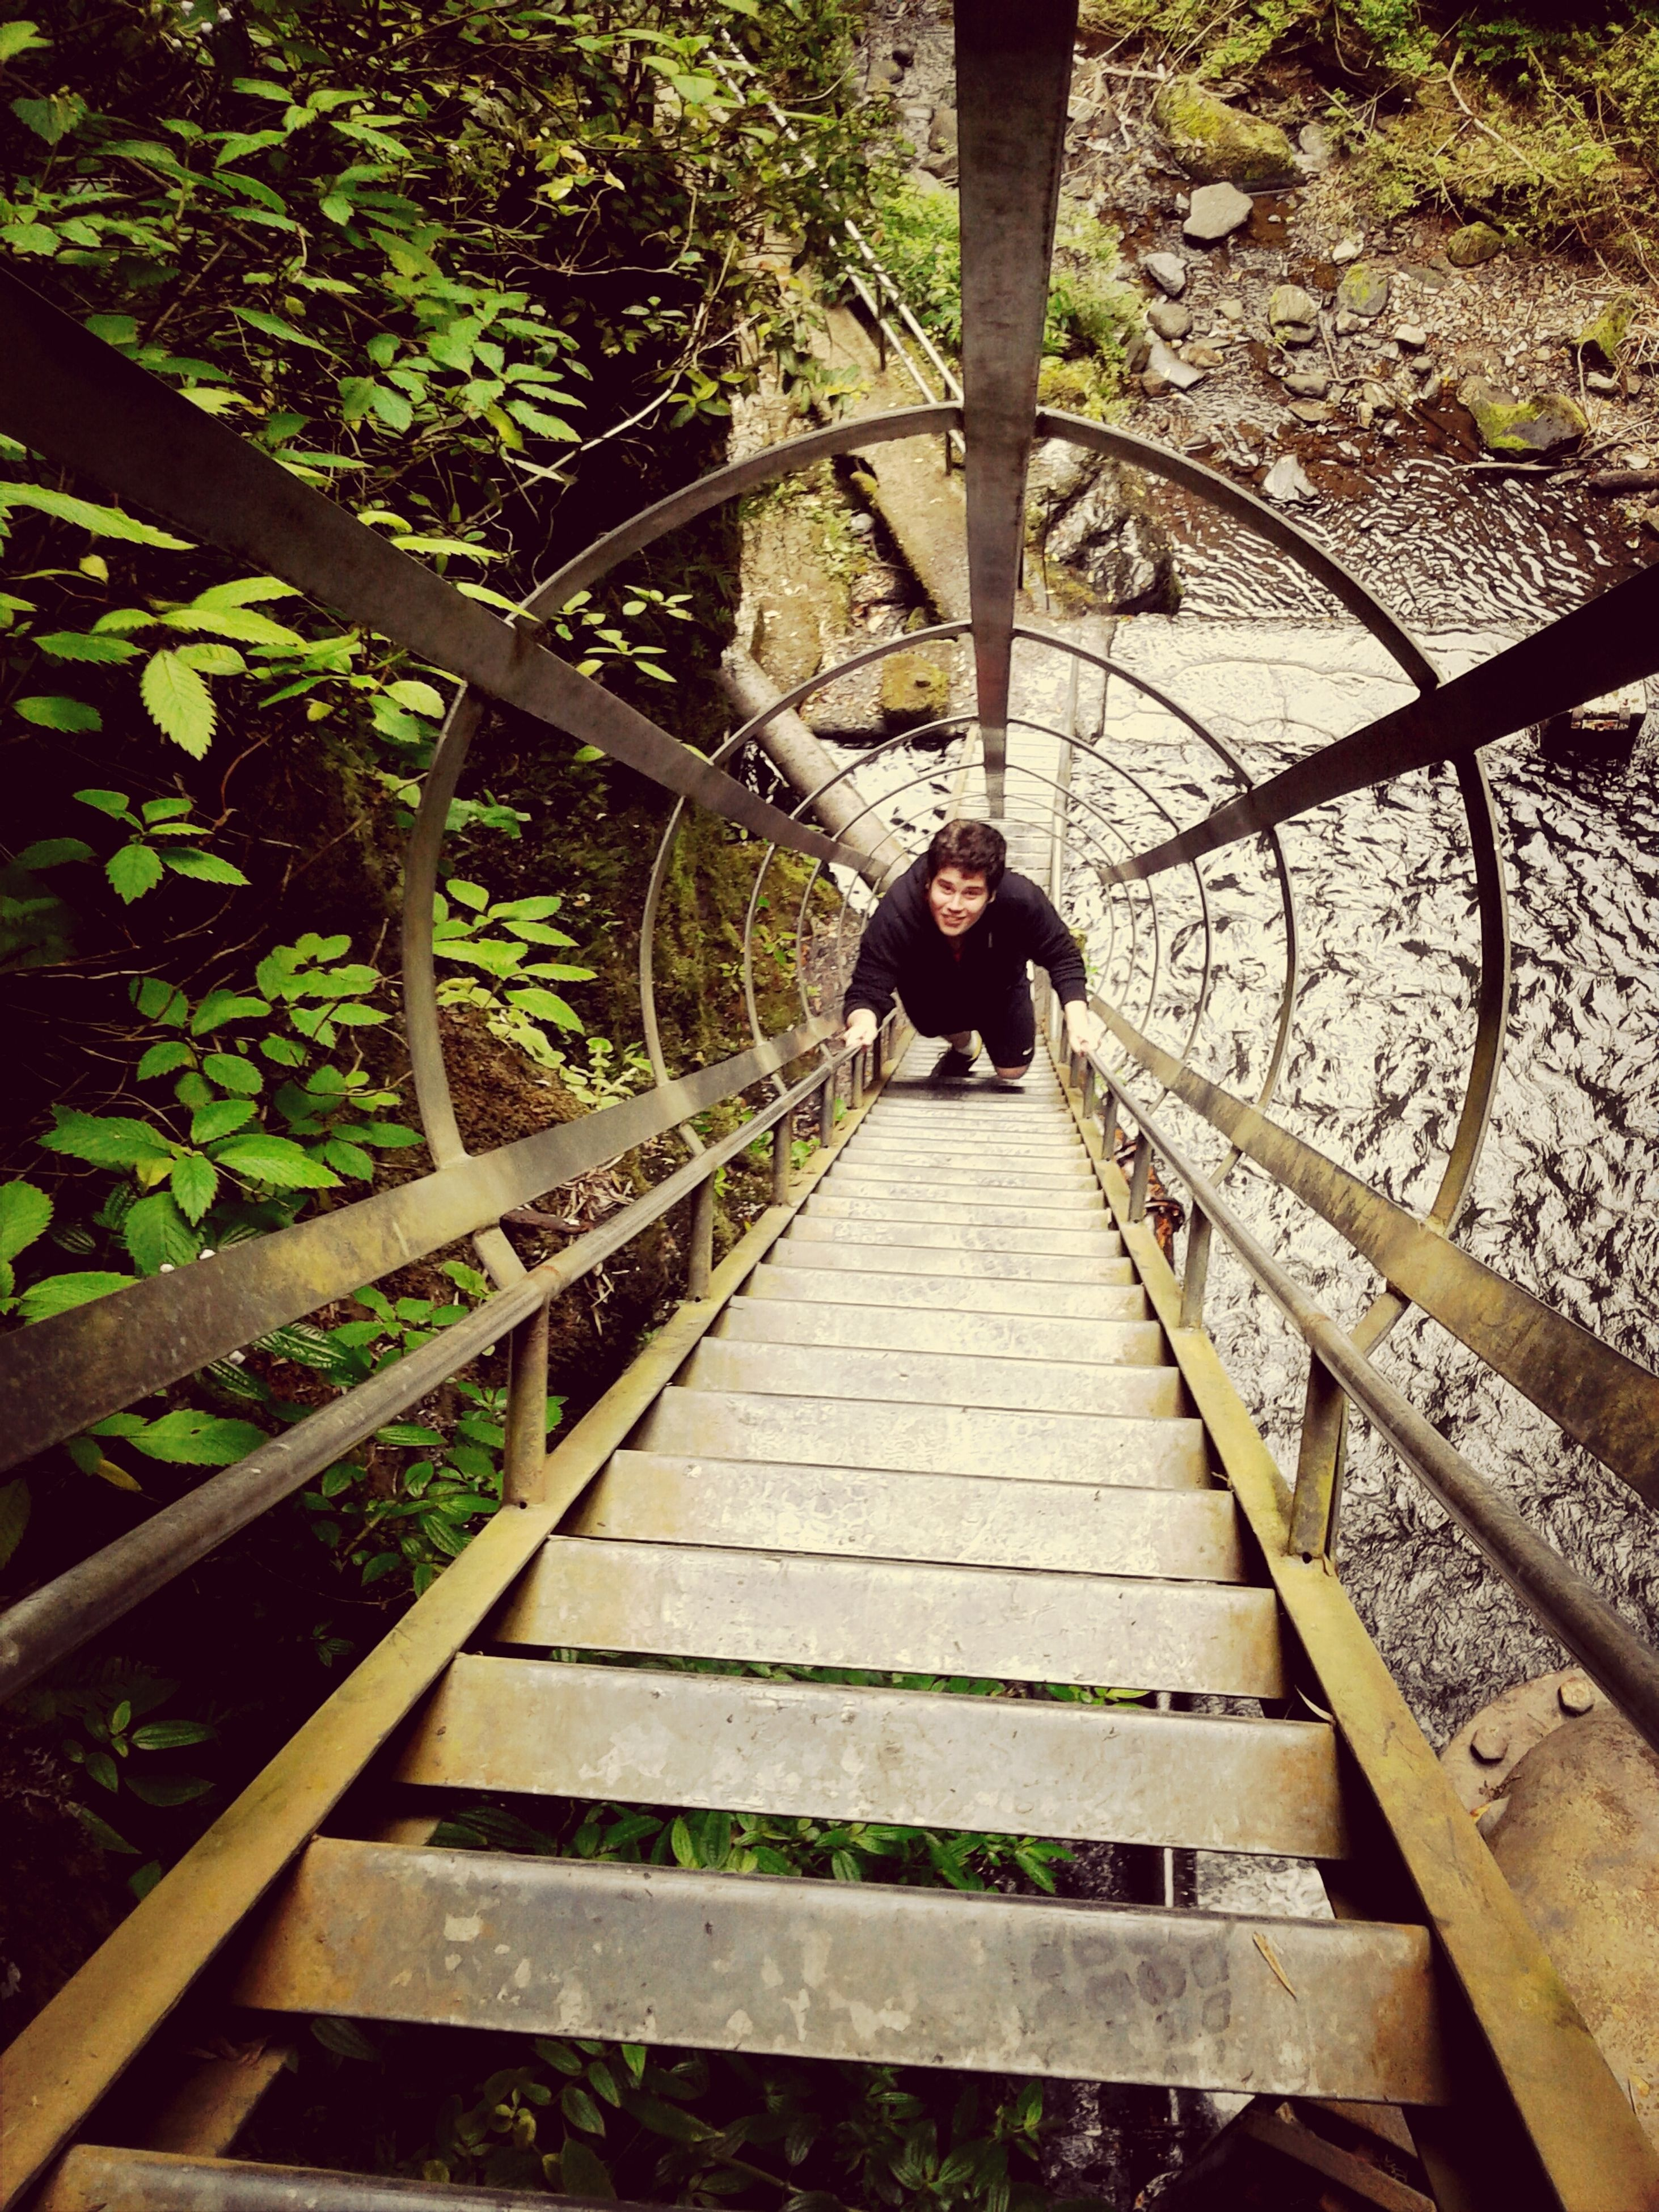 the way forward, railing, steps, steps and staircases, footbridge, tree, leisure activity, lifestyles, staircase, full length, wood - material, boardwalk, walking, rear view, diminishing perspective, bridge - man made structure, stairs, men